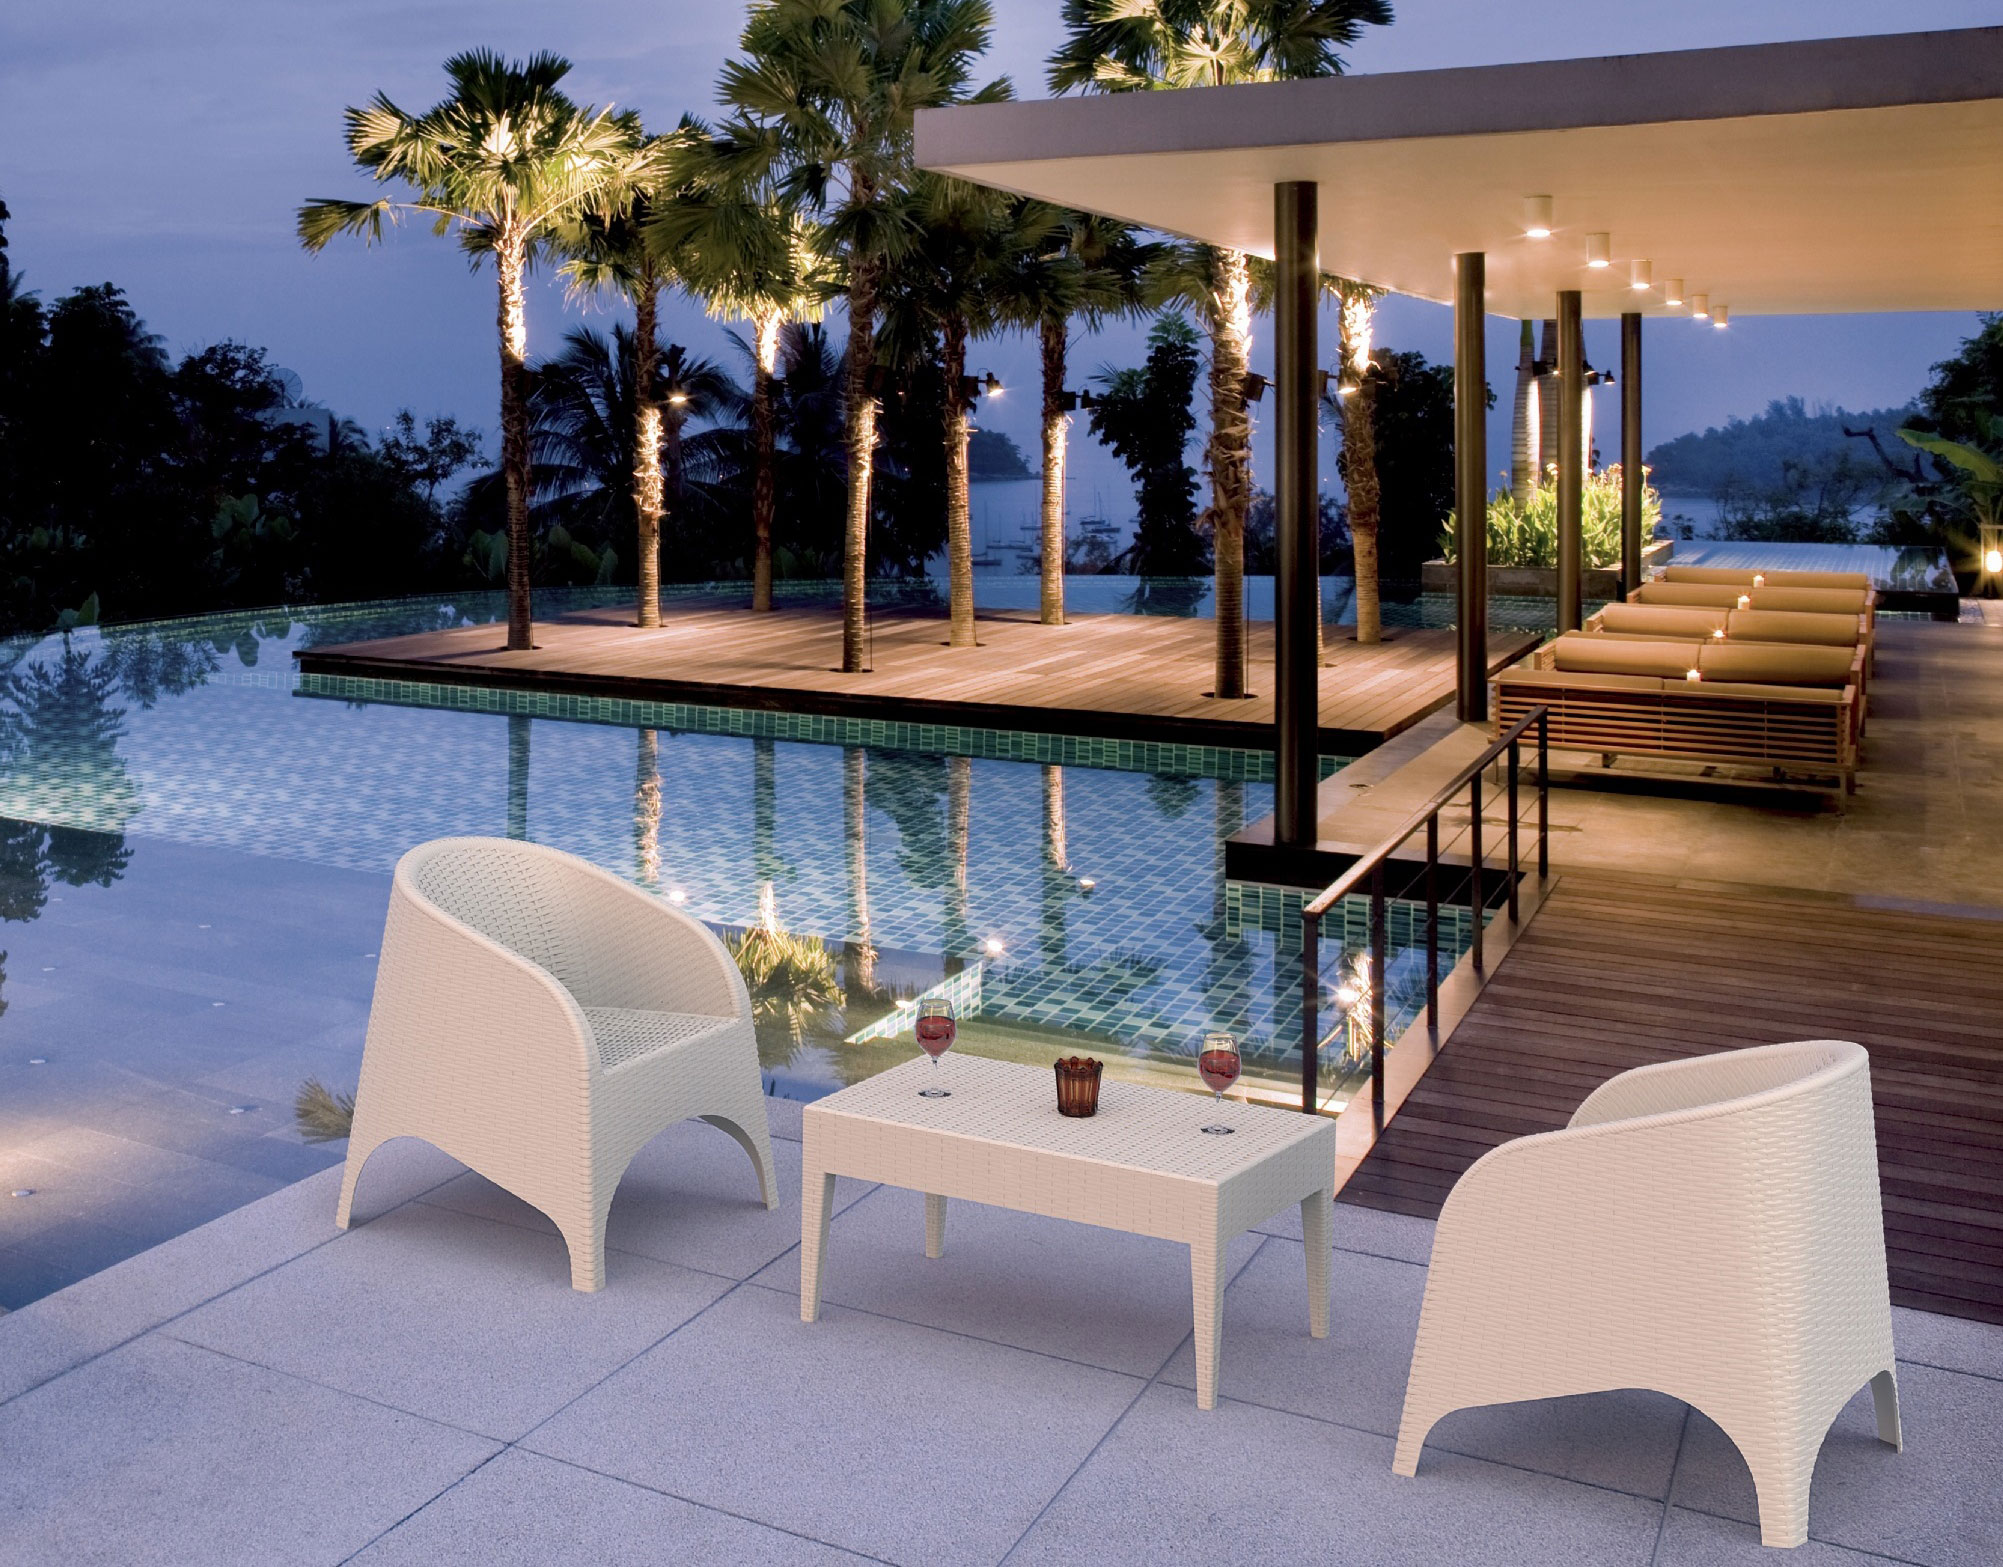 Miami Rectangle Resin Coffee Table Patio Productions - Miami outdoor furniture